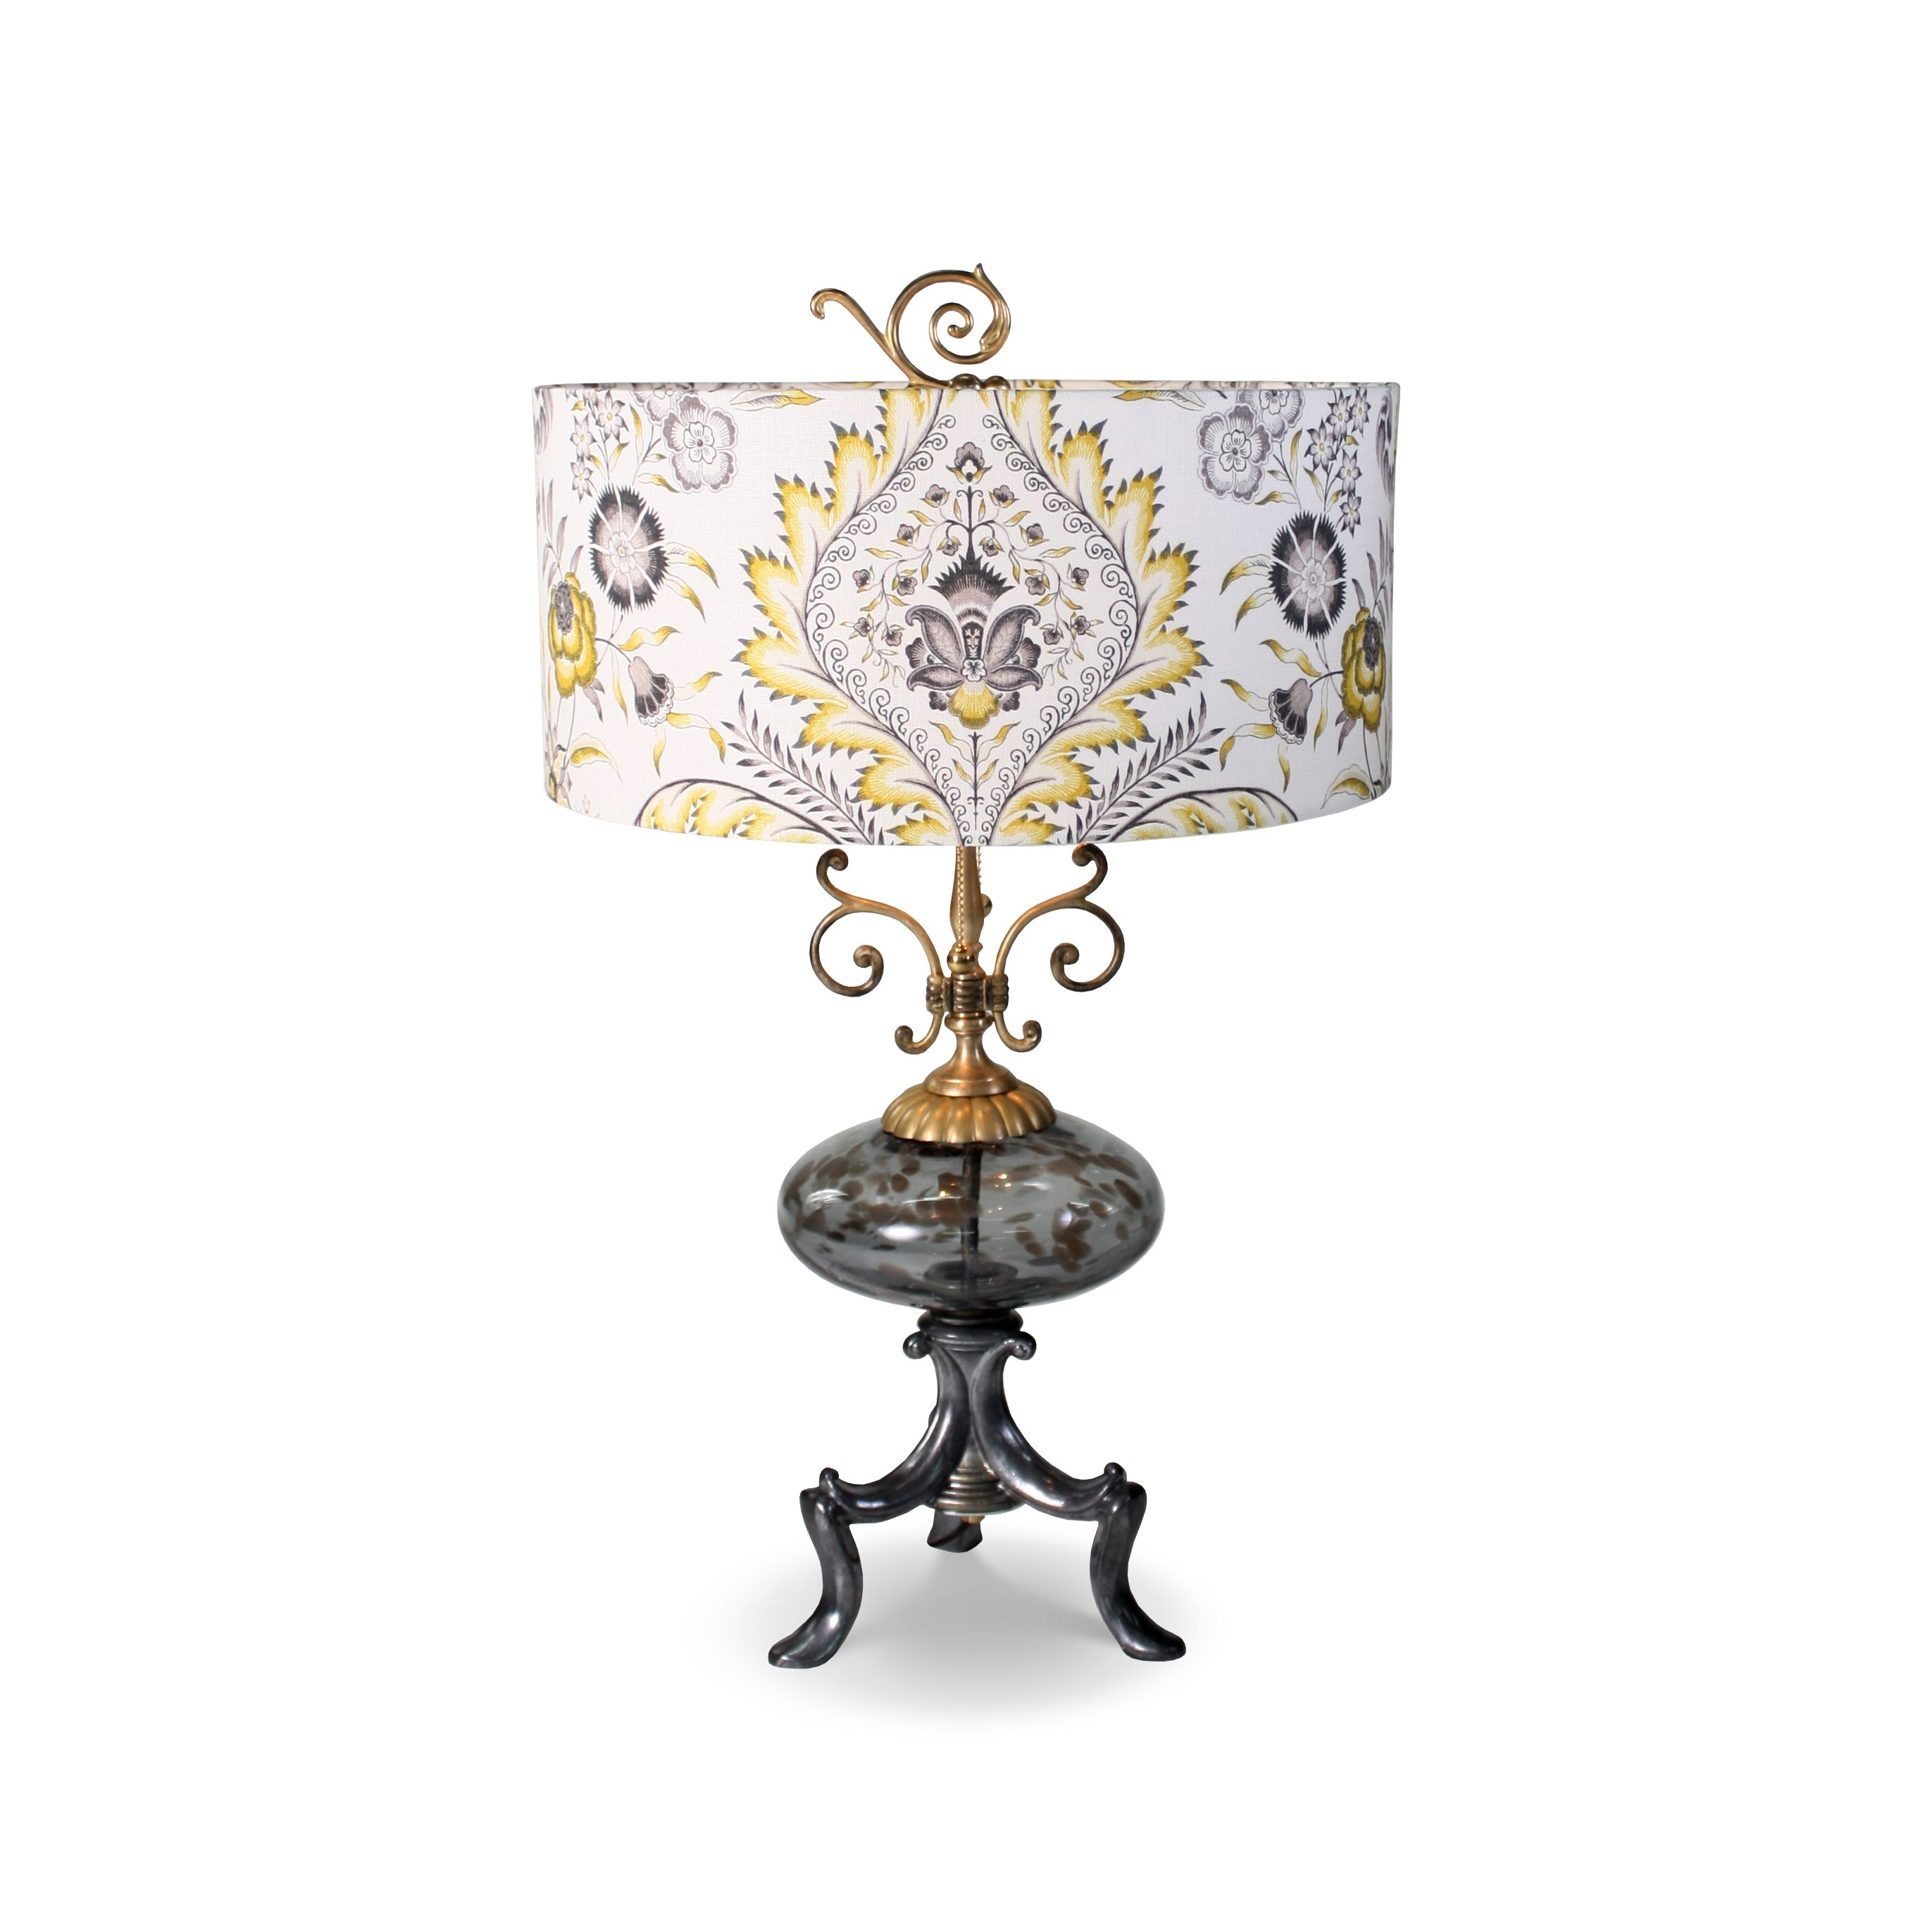 Luna Bella Lamps | galleryhip.com - The Hippest Galleries!